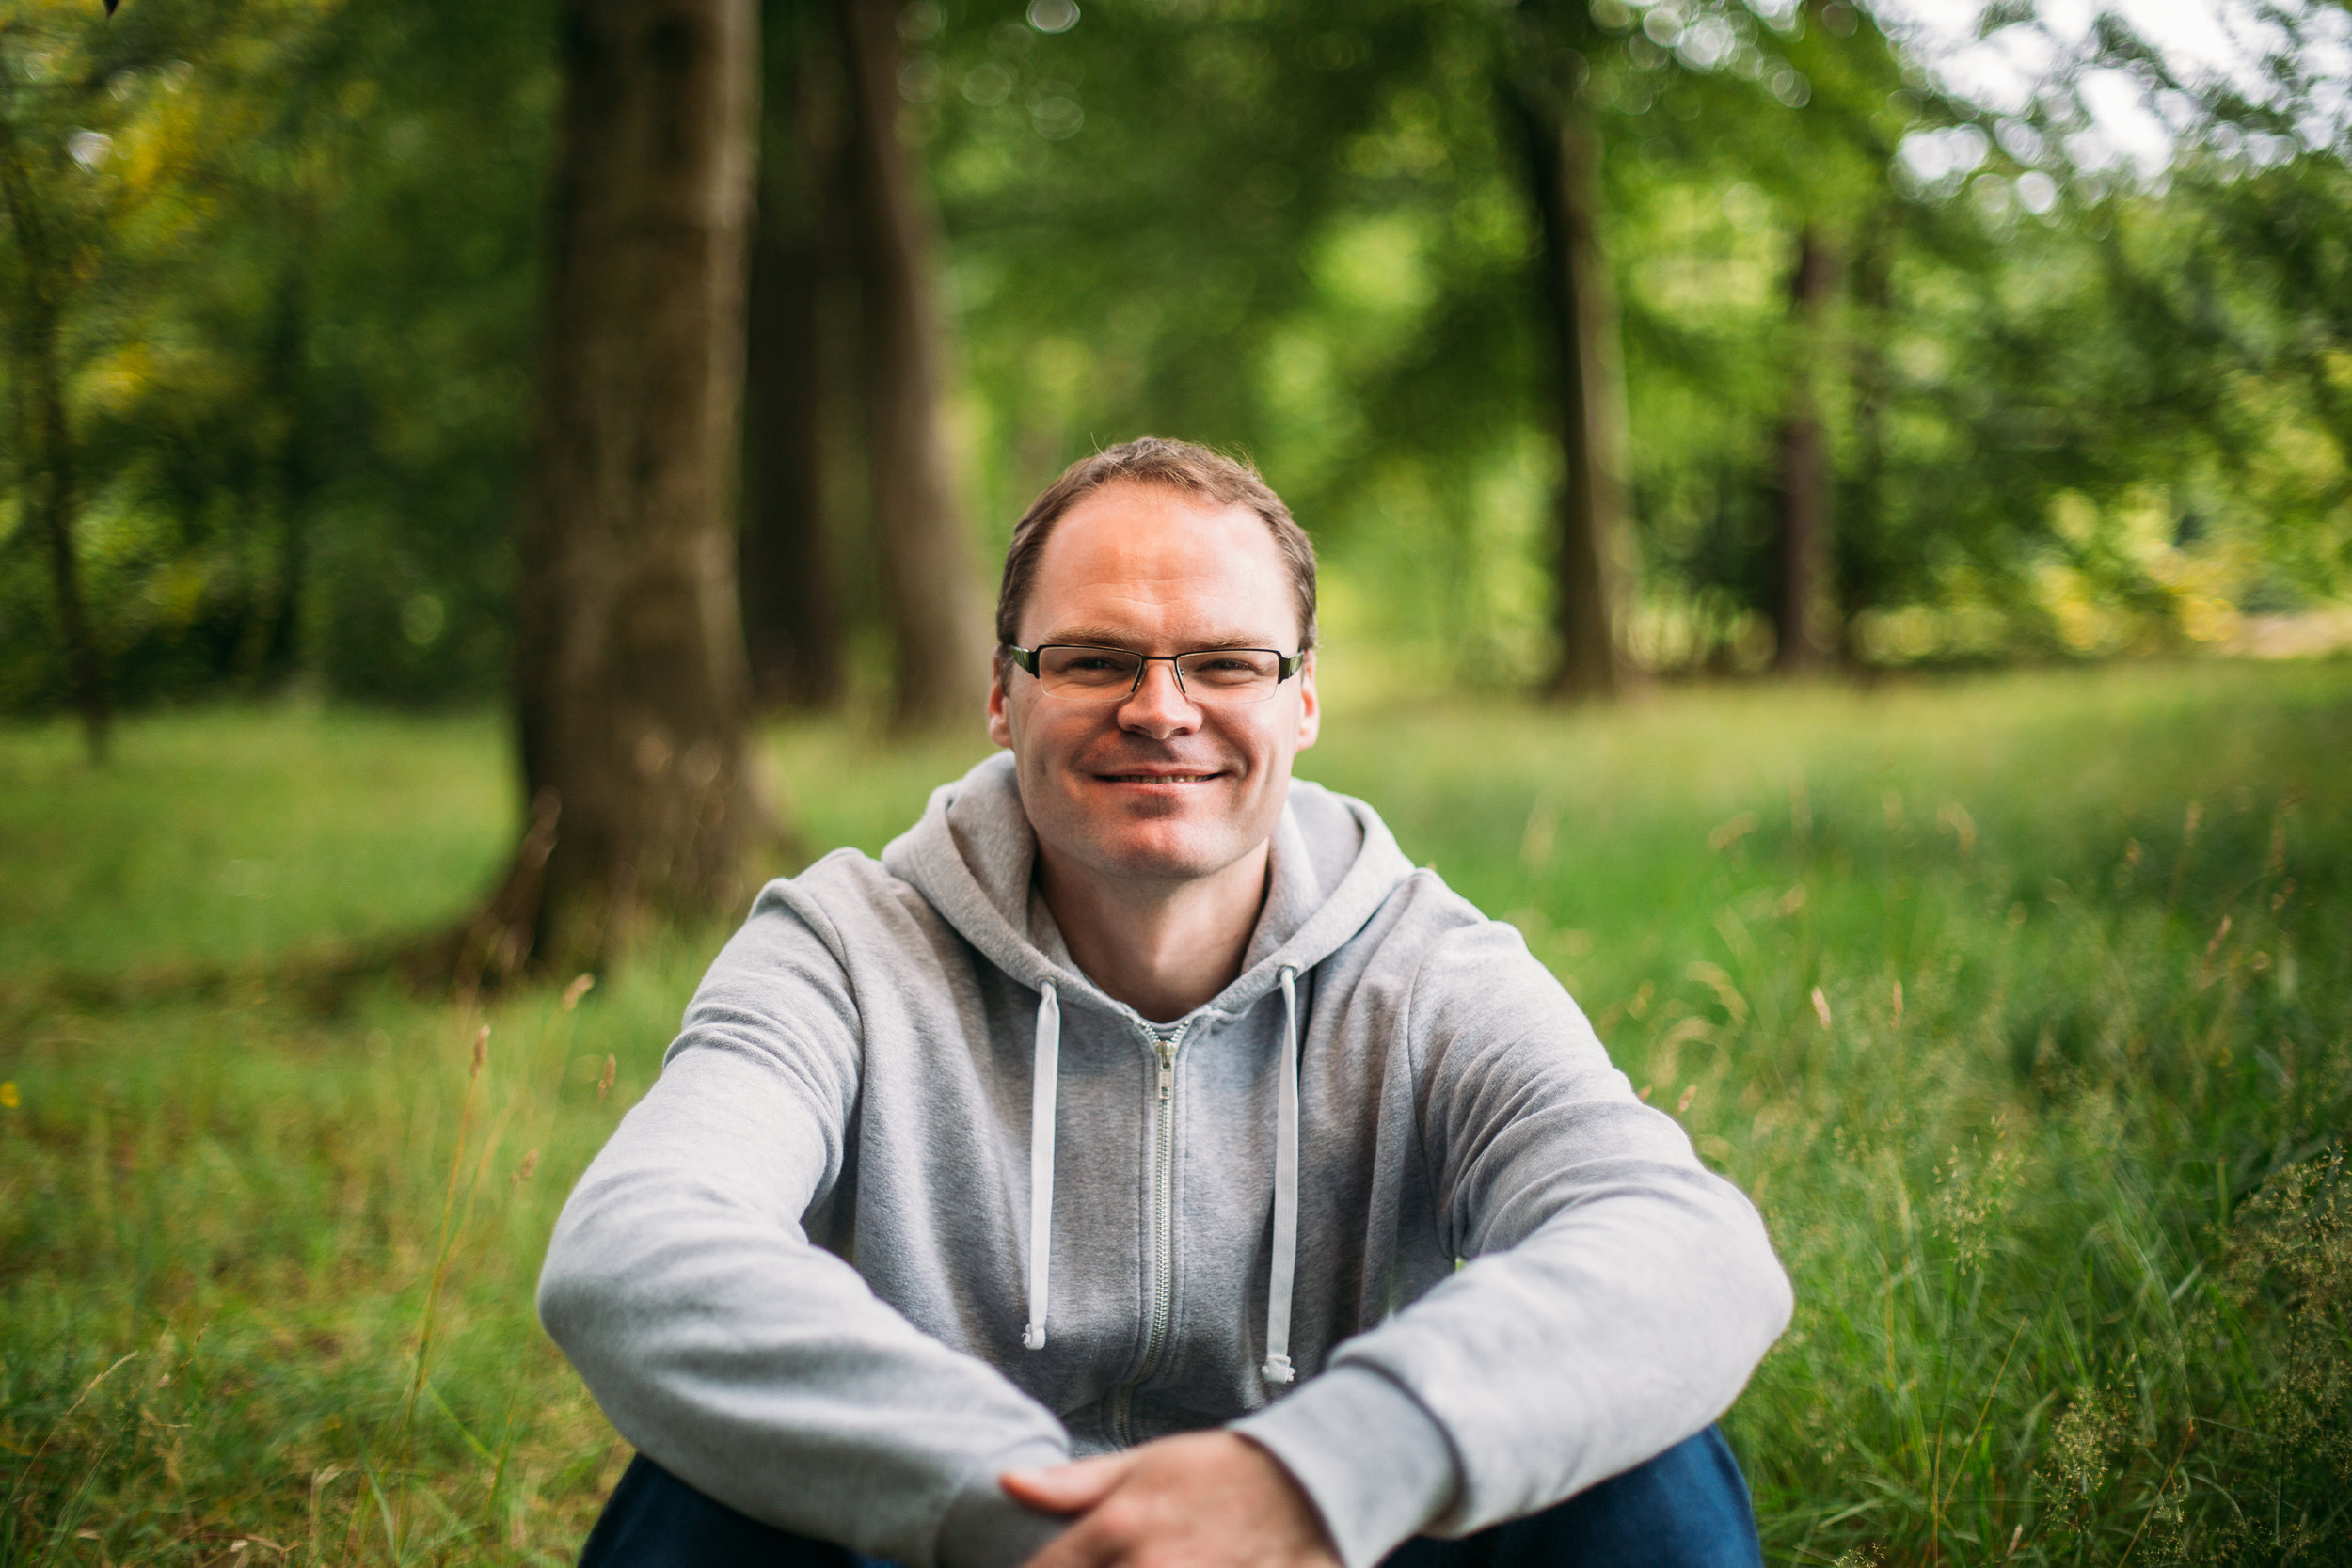 A photo of Marc Bowker, owner of web design company Site Owl.